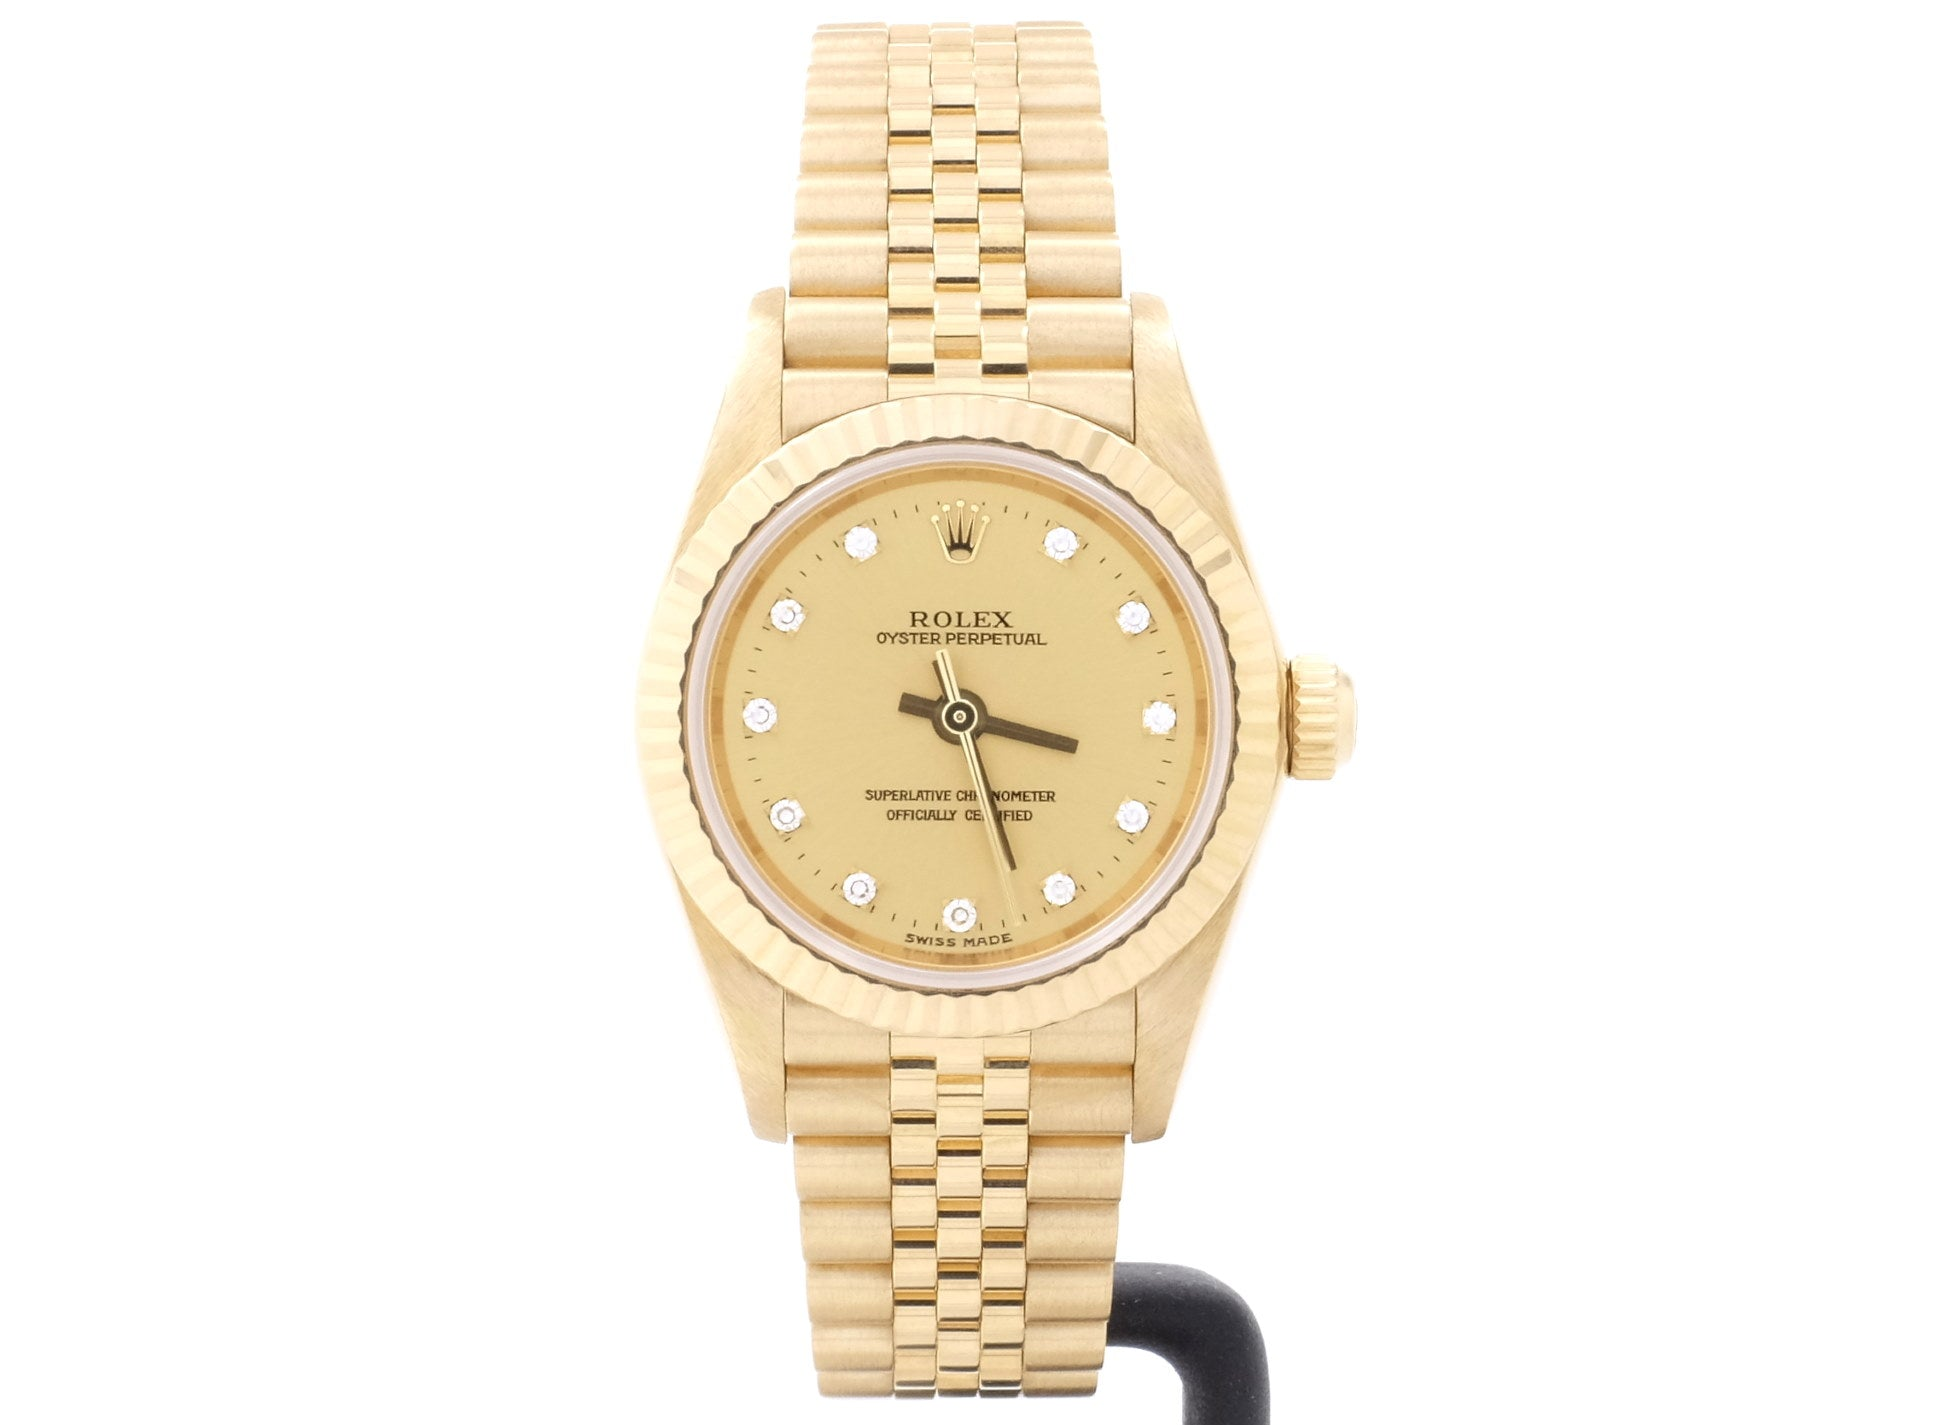 FANTASTIC Condition 2003 18ct Gold Rolex OYSTER 76198 with Original Diamond-Dot Dial